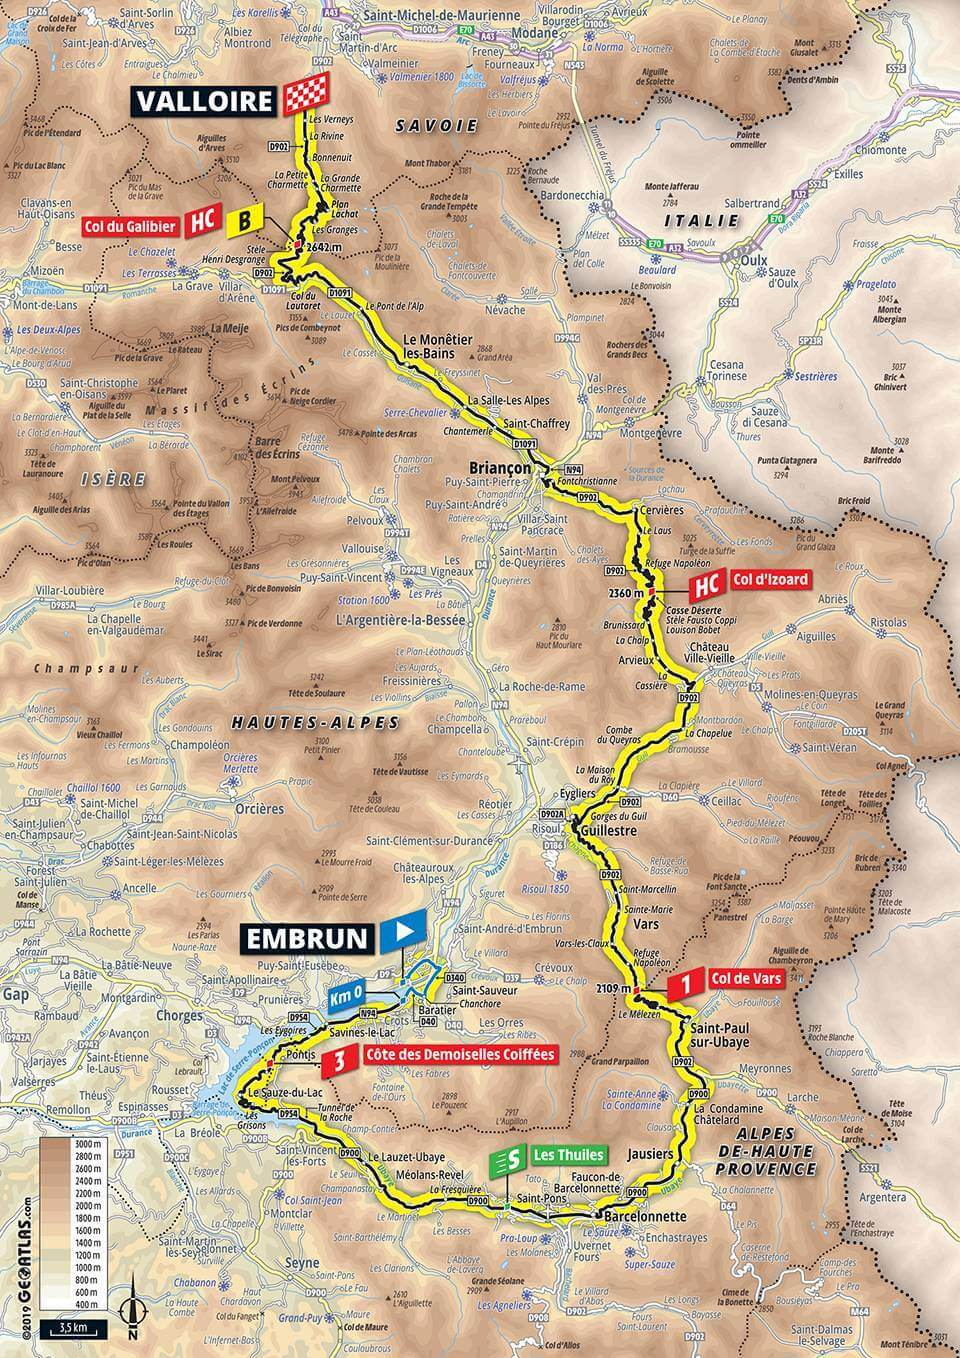 Stage 18 - Embrun to Valloire - Le Loop